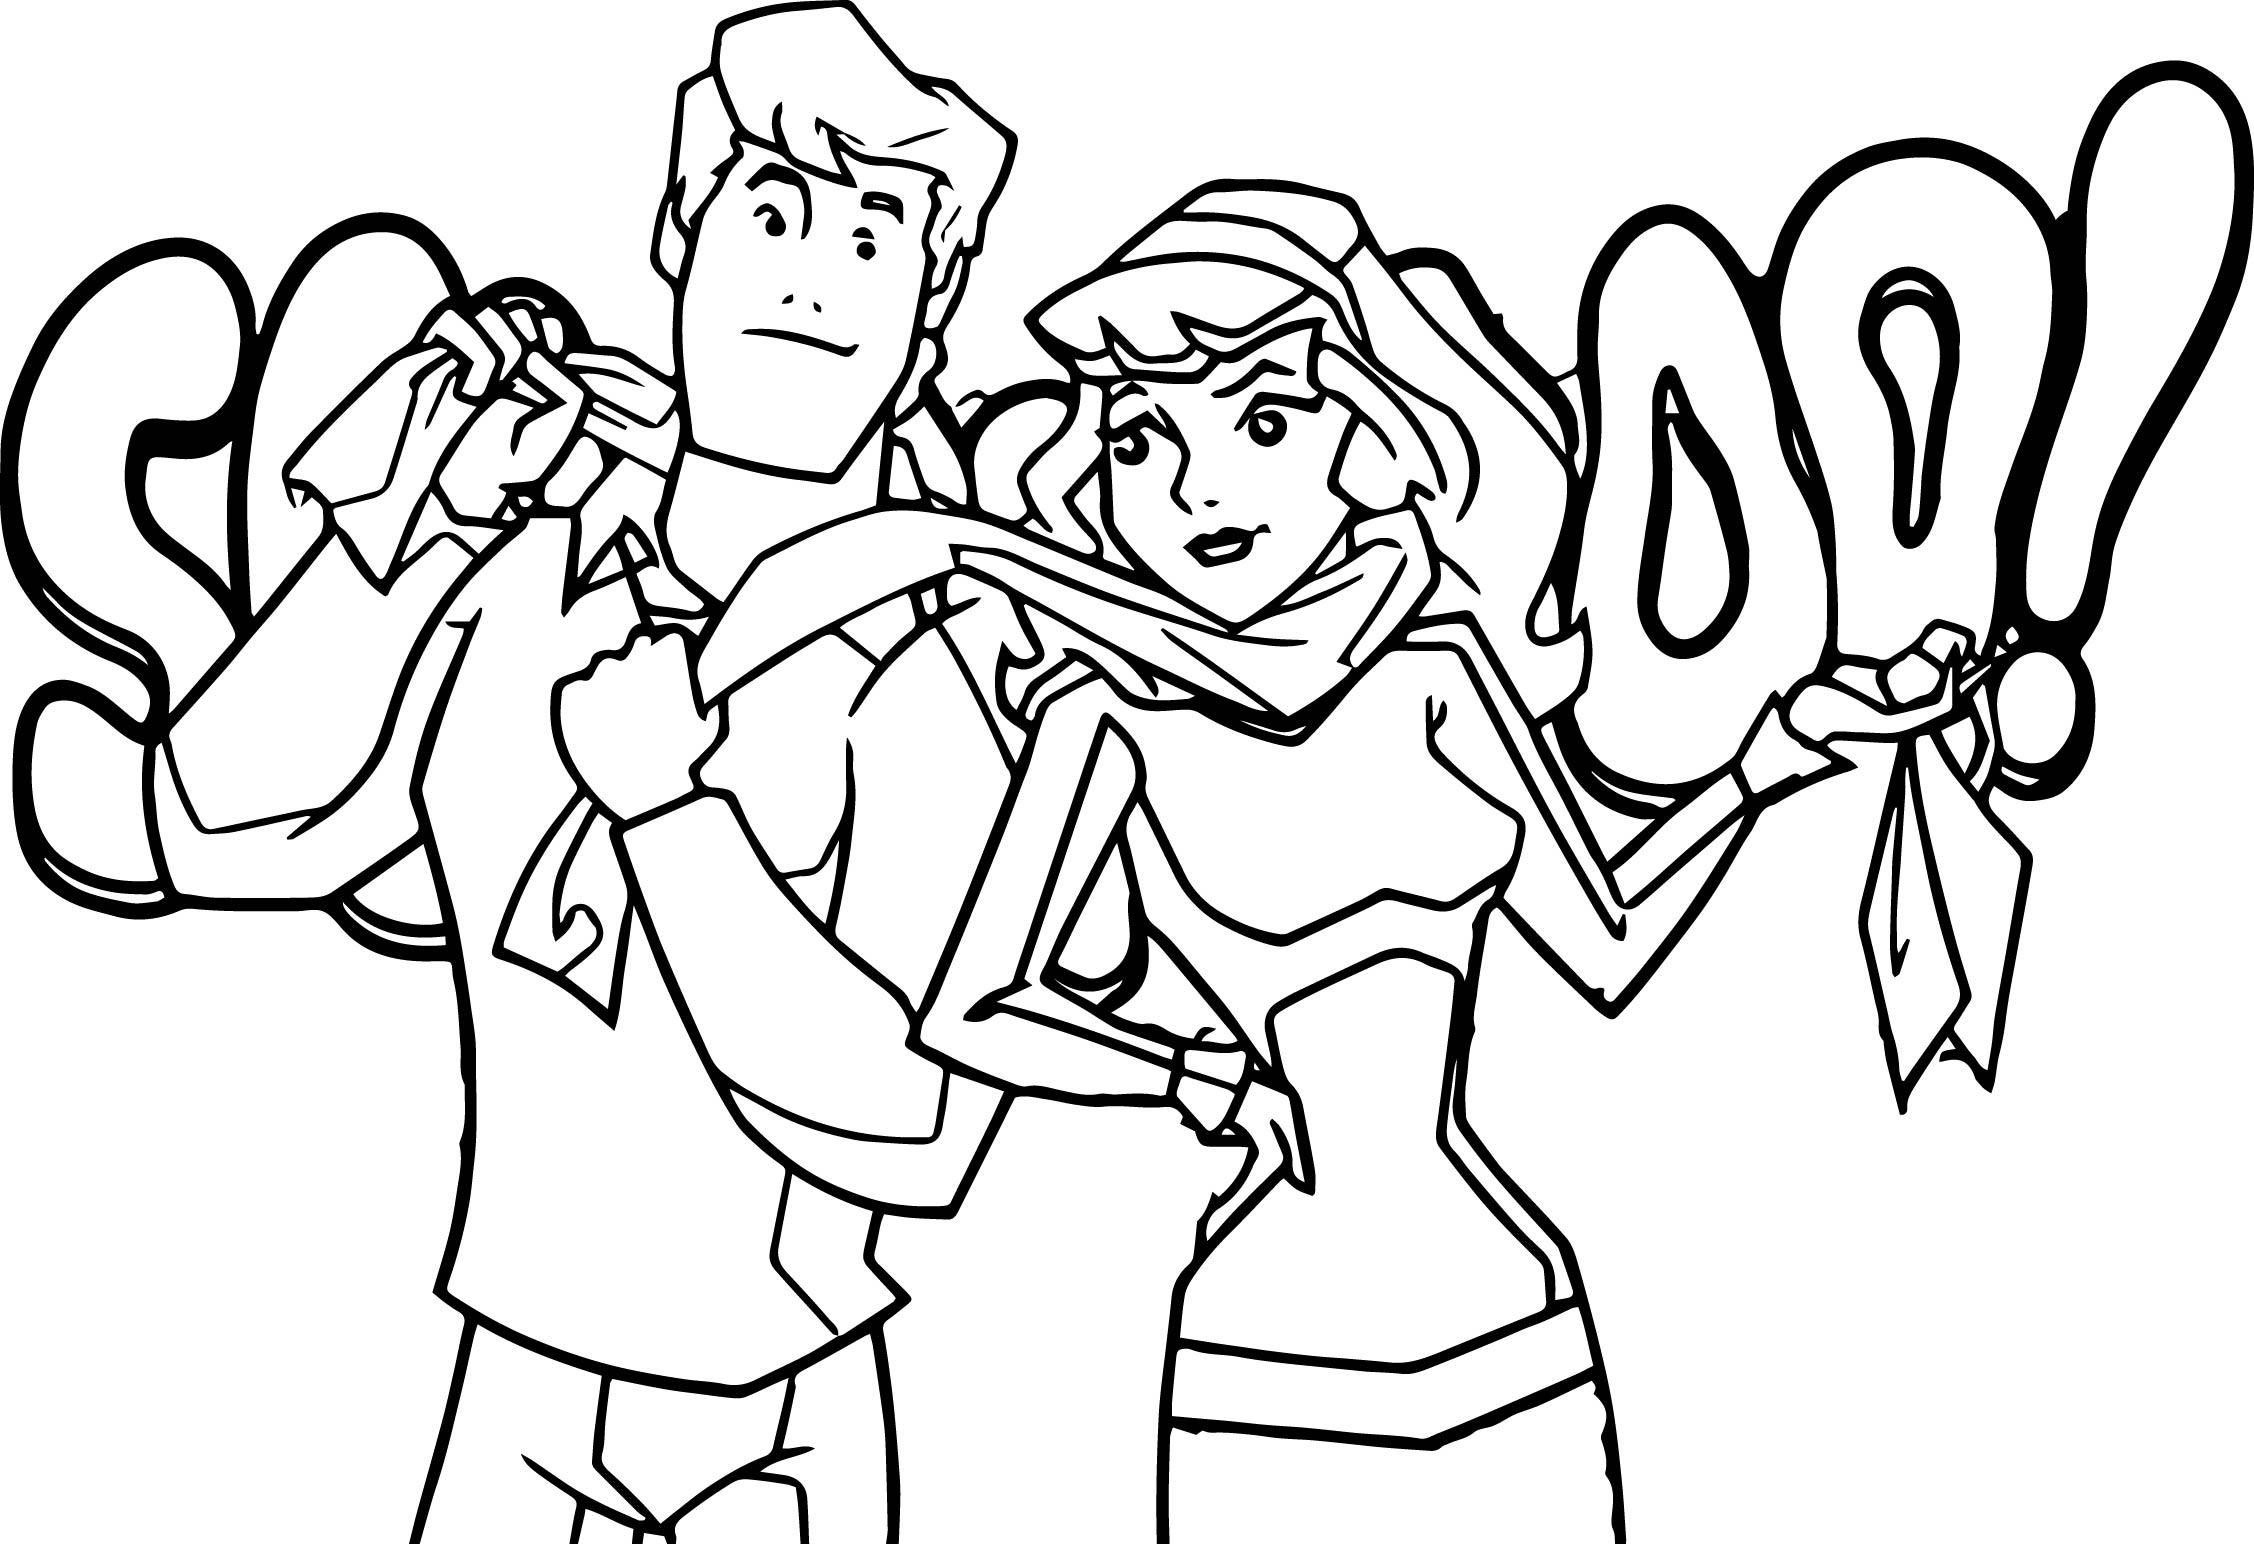 Scooby free coloring pages for Scooby doo christmas coloring pages